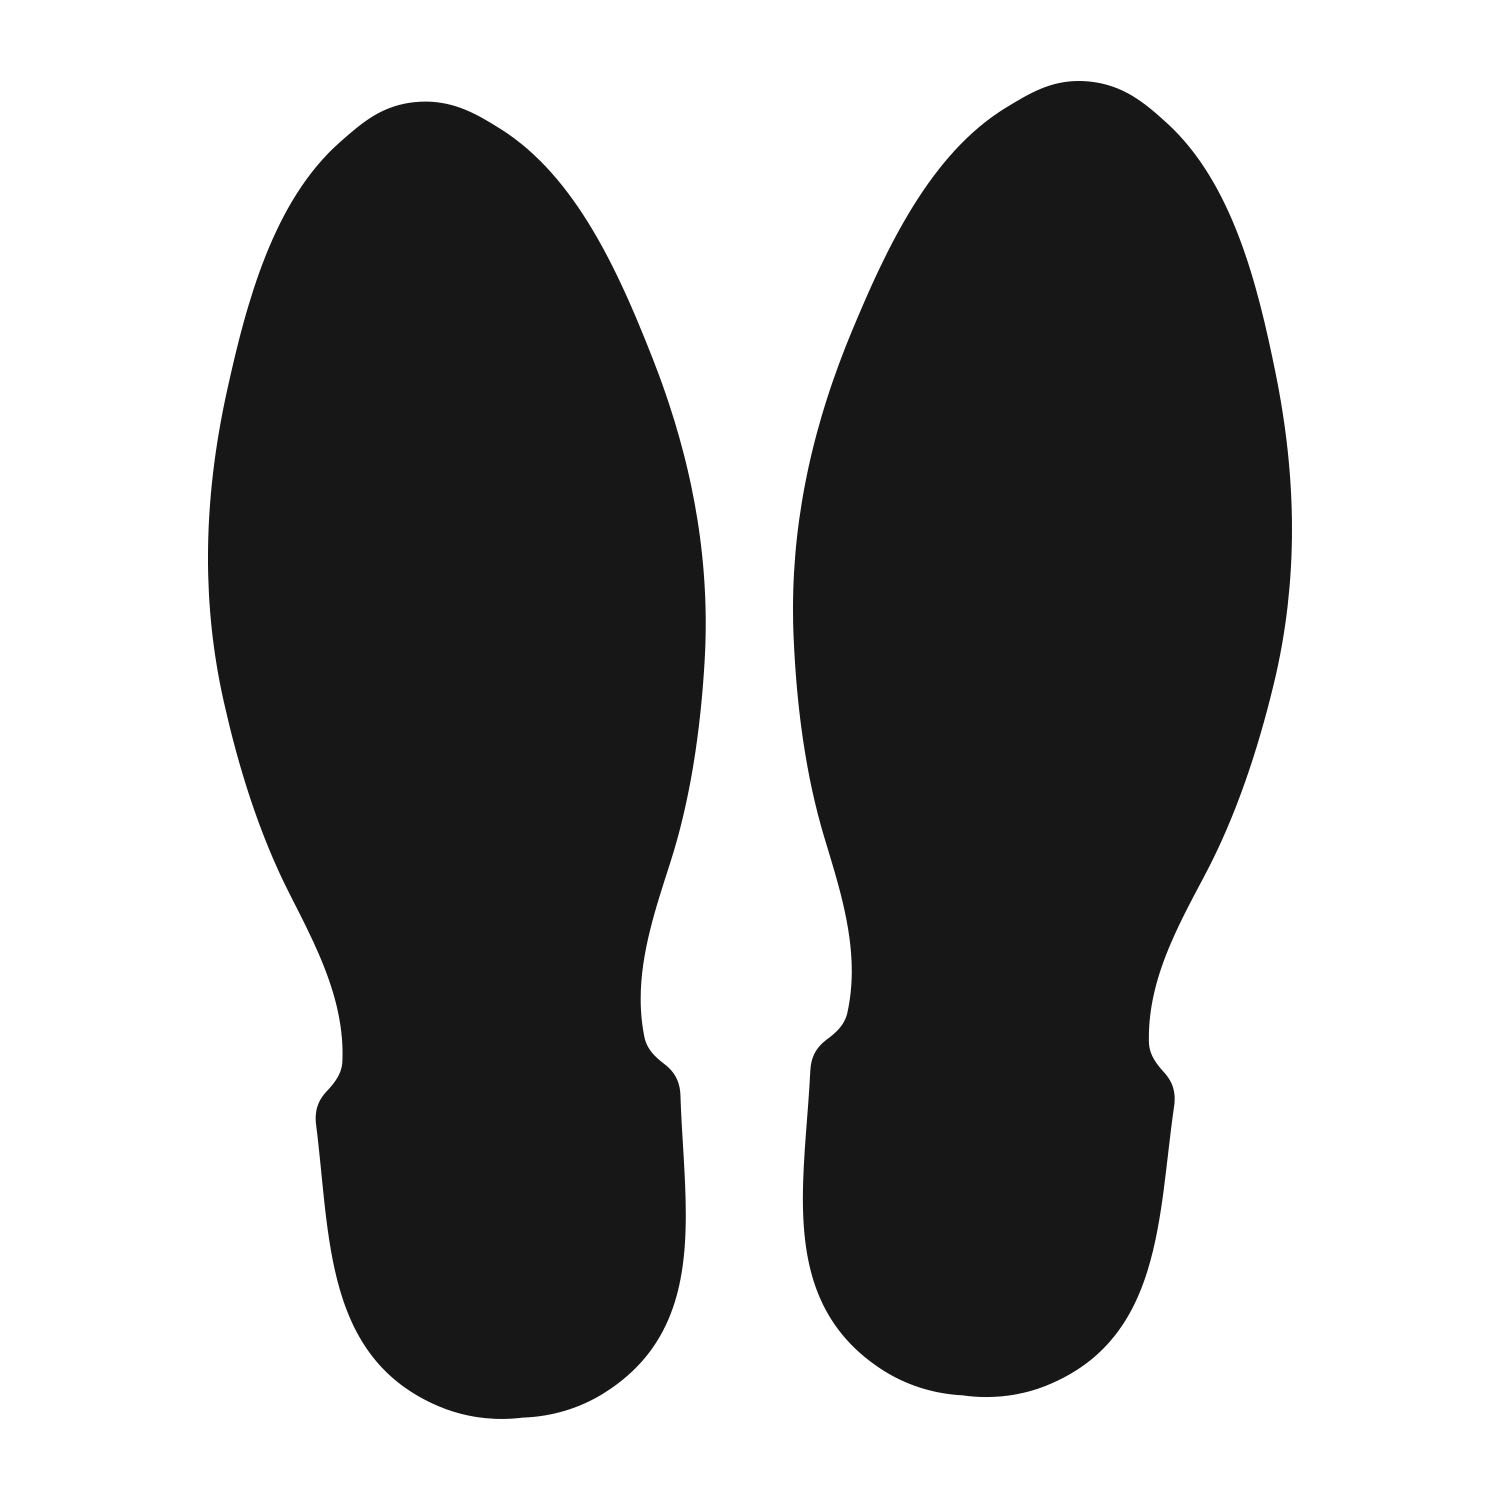 LiteMark 9 Inch Black Unifoot Footprint Stickers Safe for Floors and Walls Straight Feet Design 6 Pairs